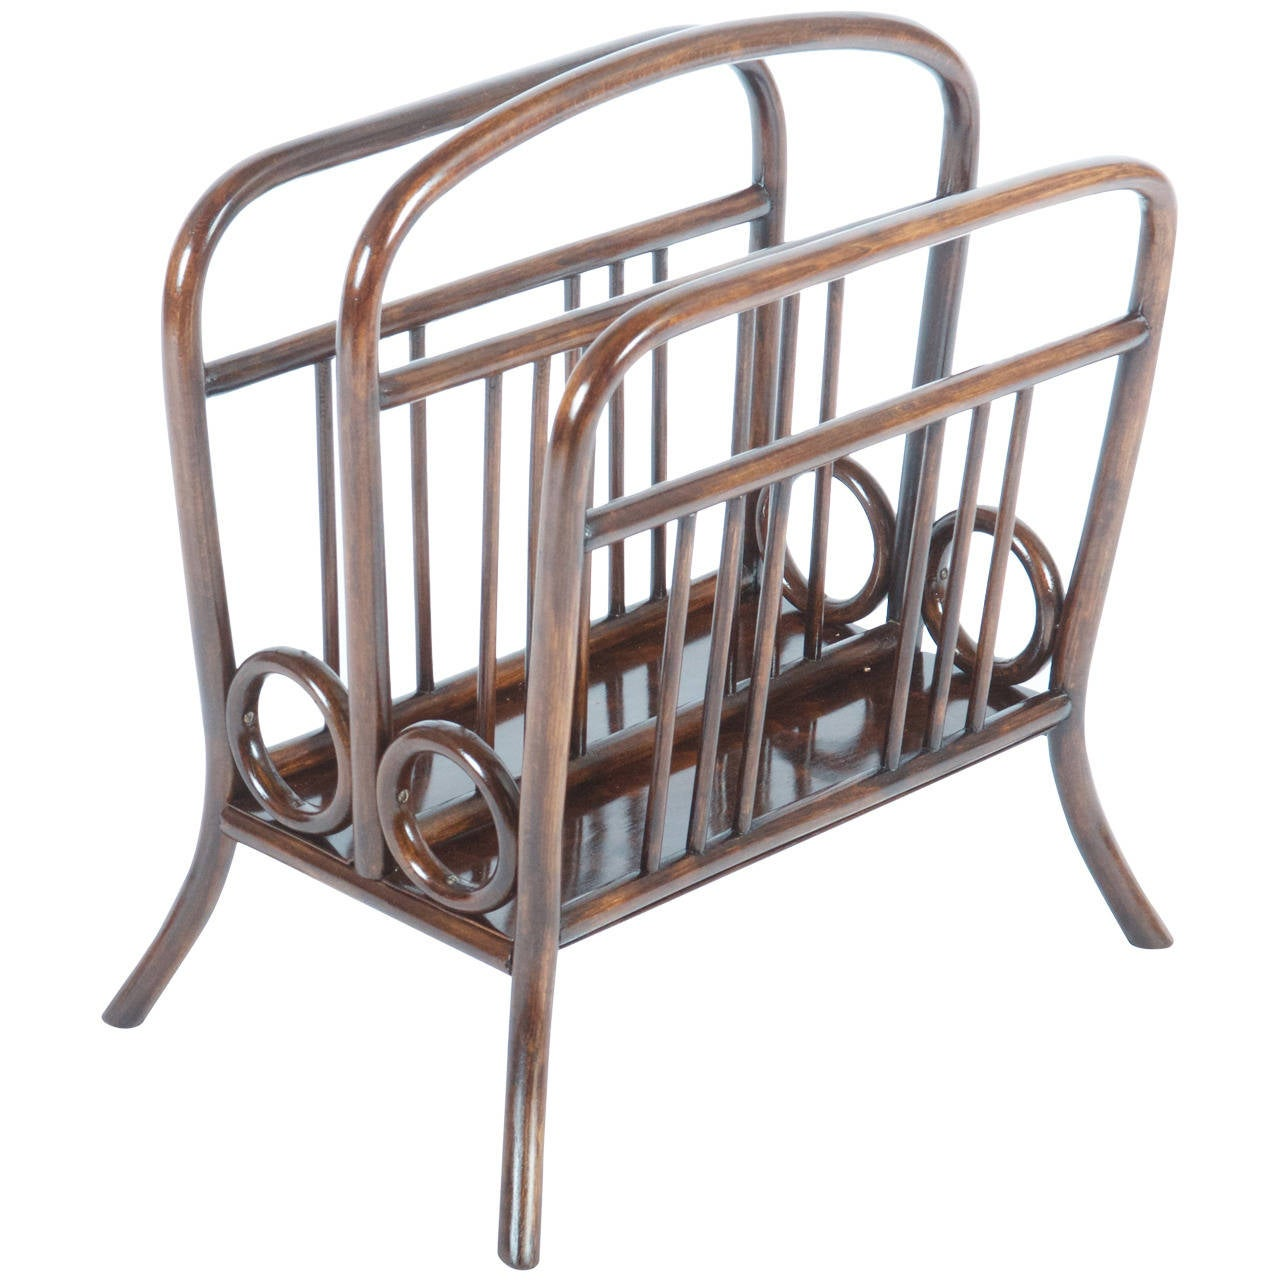 newspaper rack 1. Thonet Bentwood Music Or Newspaper Rack For Sale 1